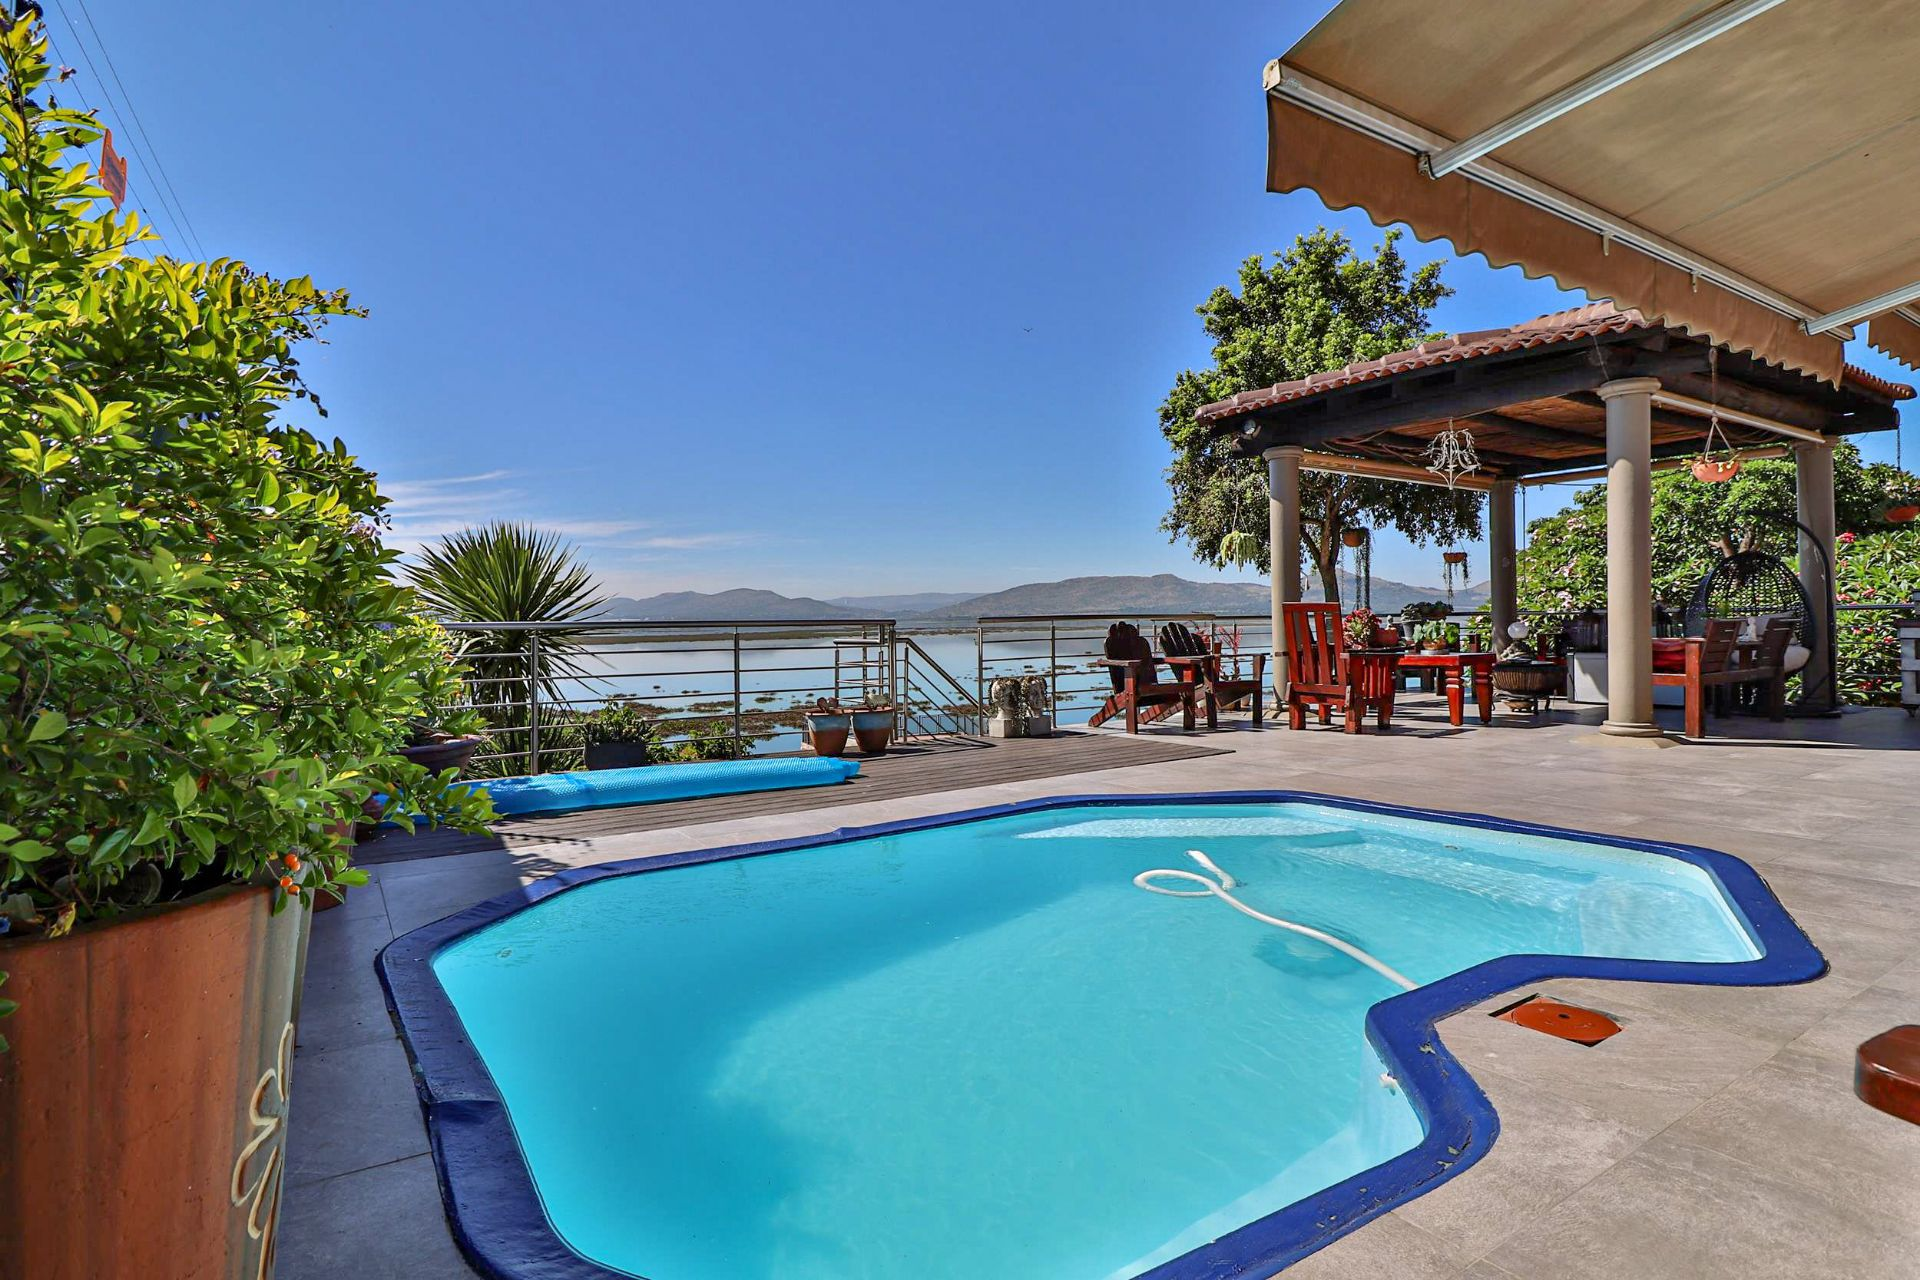 House in Kosmos Village - Pool set in patio overlooking the dam